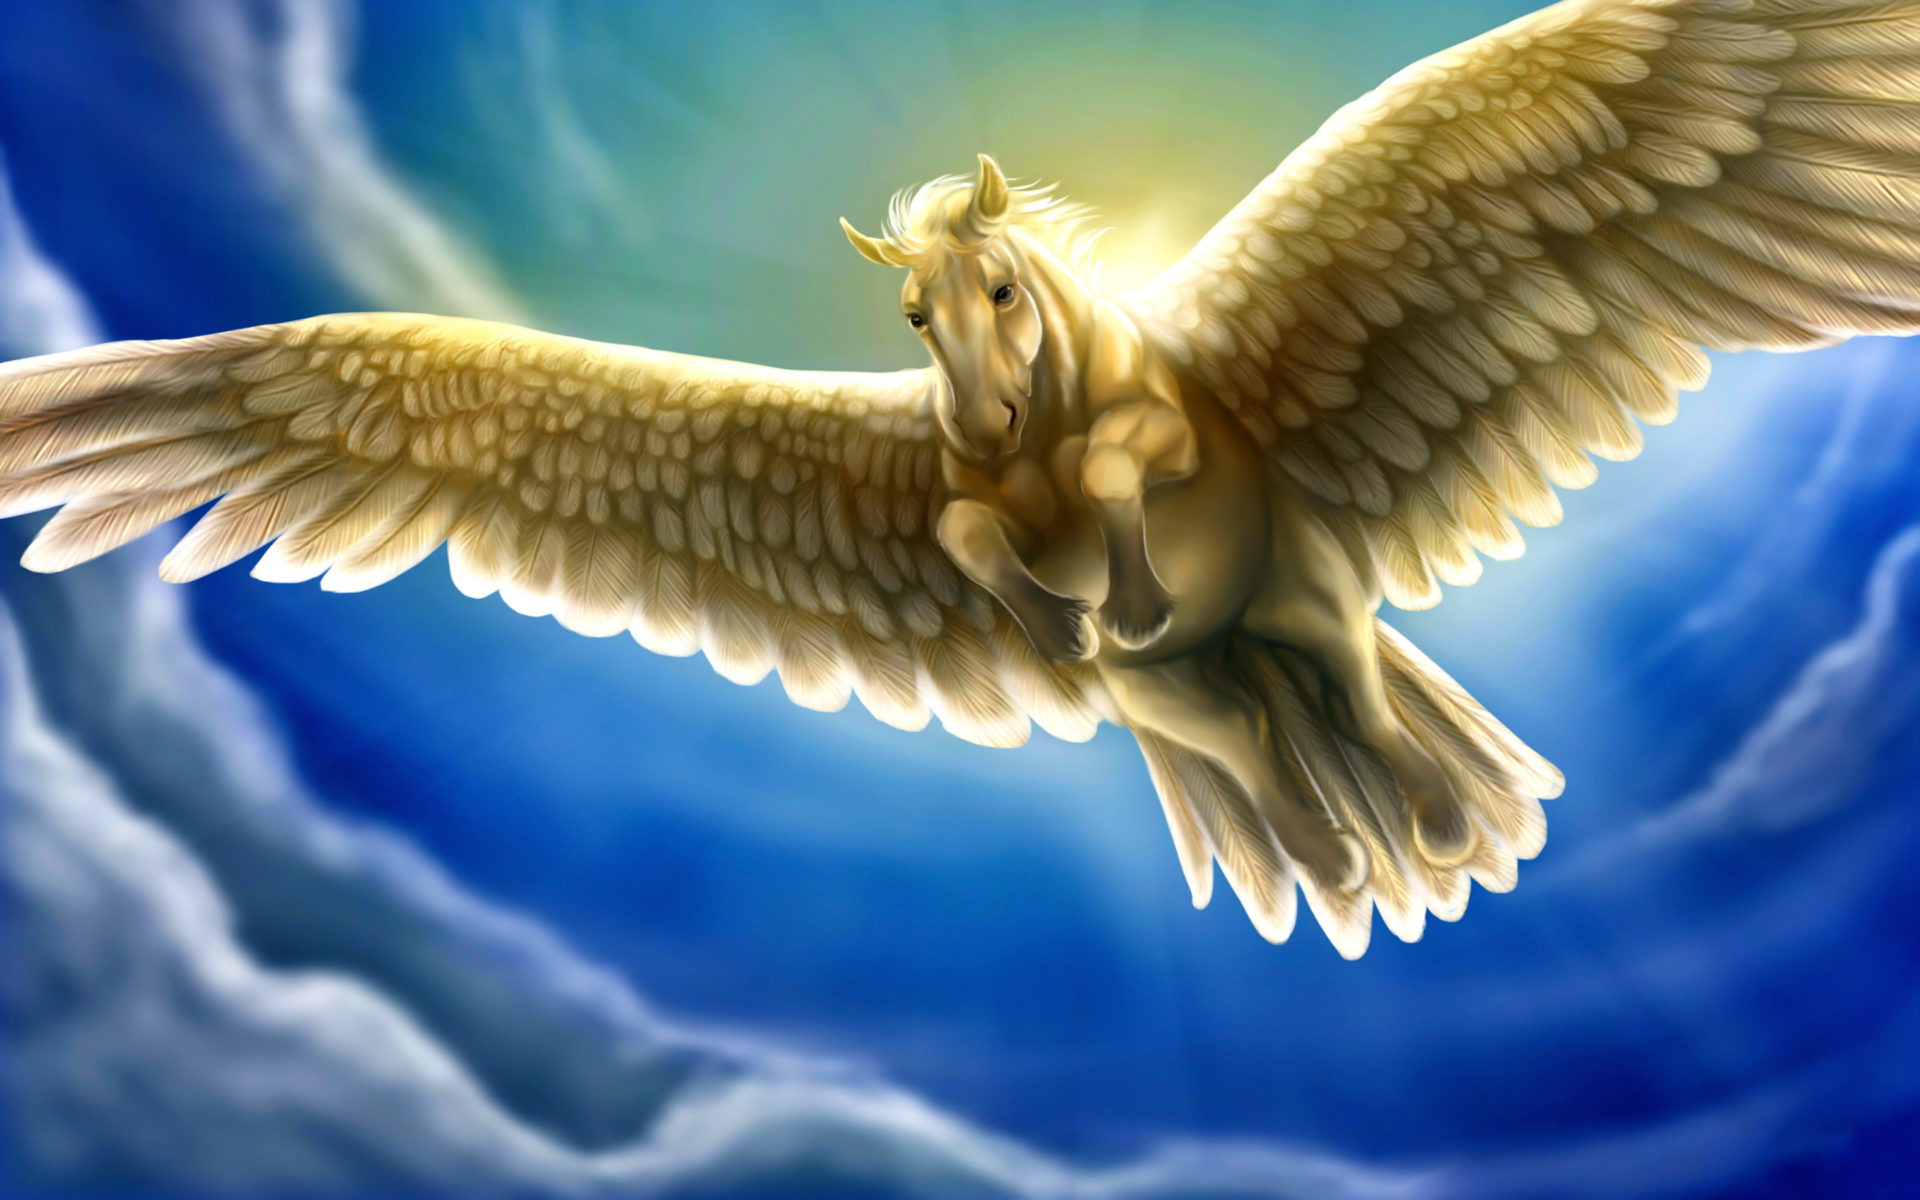 Cute Tiger Cubs Hd Wallpapers Heavenly White Horse With Wings Pegasus Fantasy Sky Blue